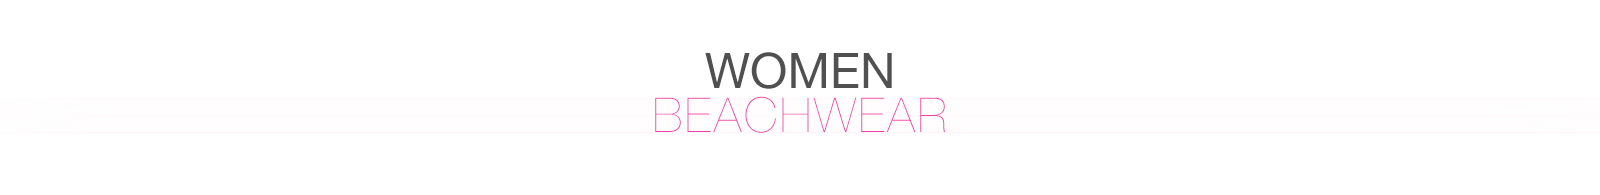 WOMEN - Beachwear